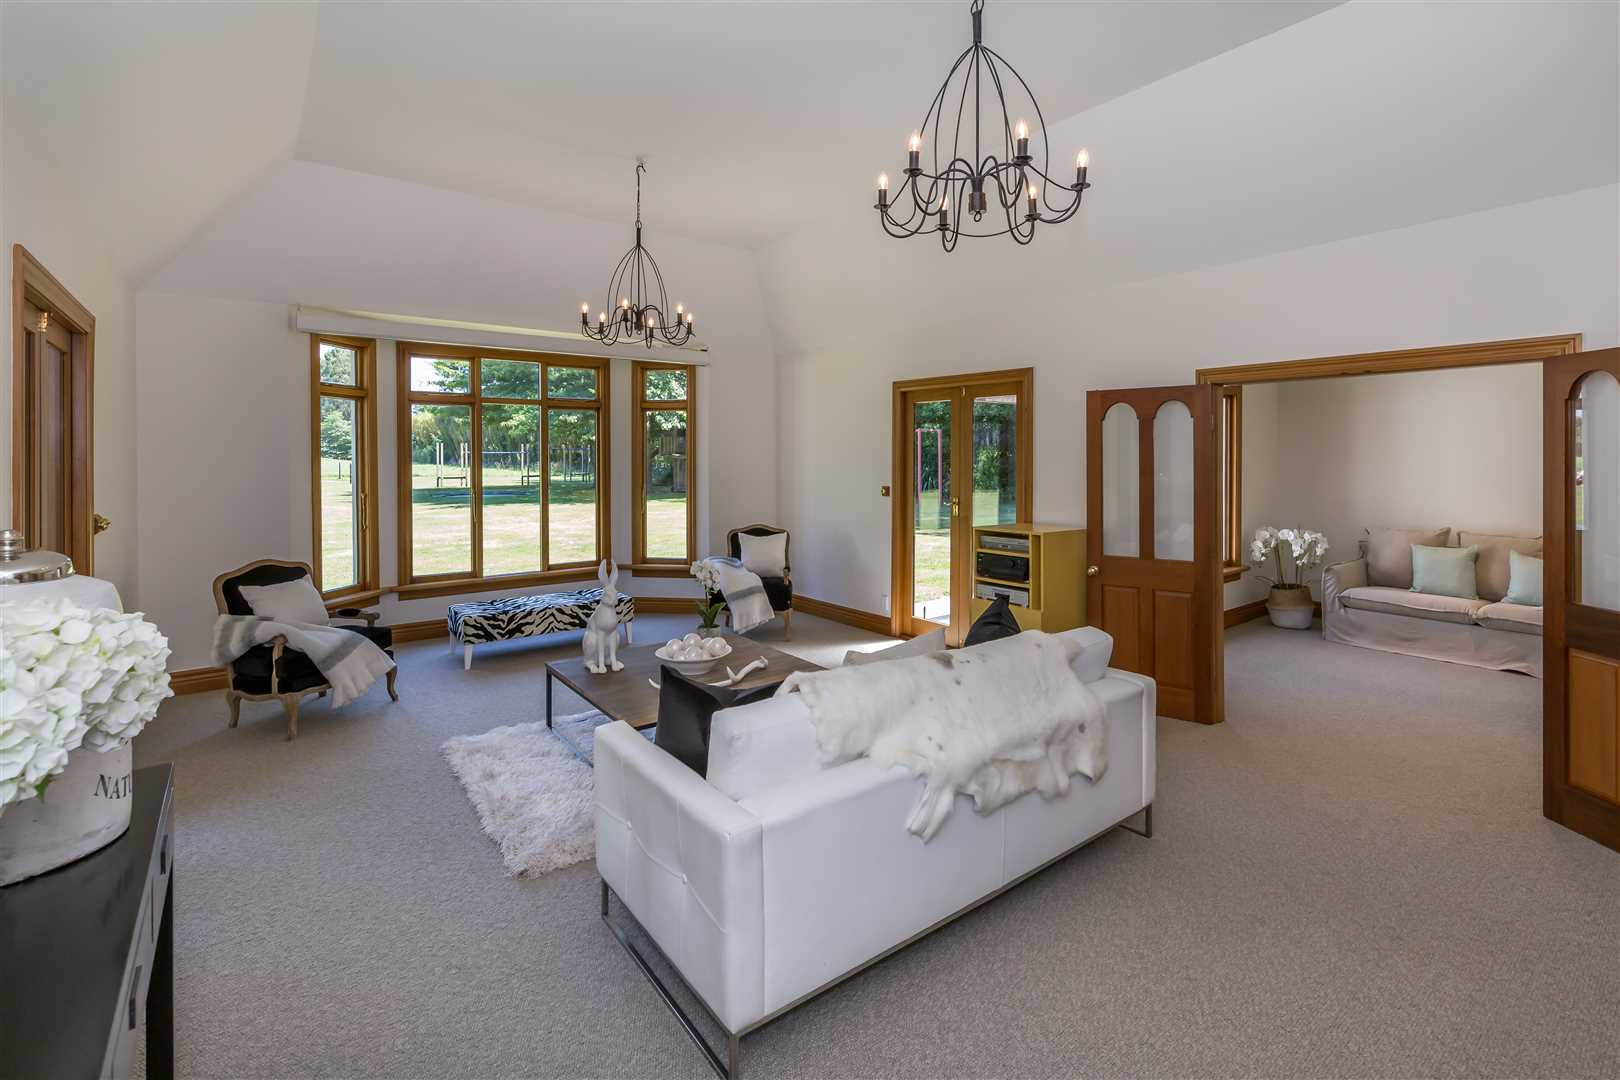 Lounge with adjoining room, ideal for children, viewing or another dining option?